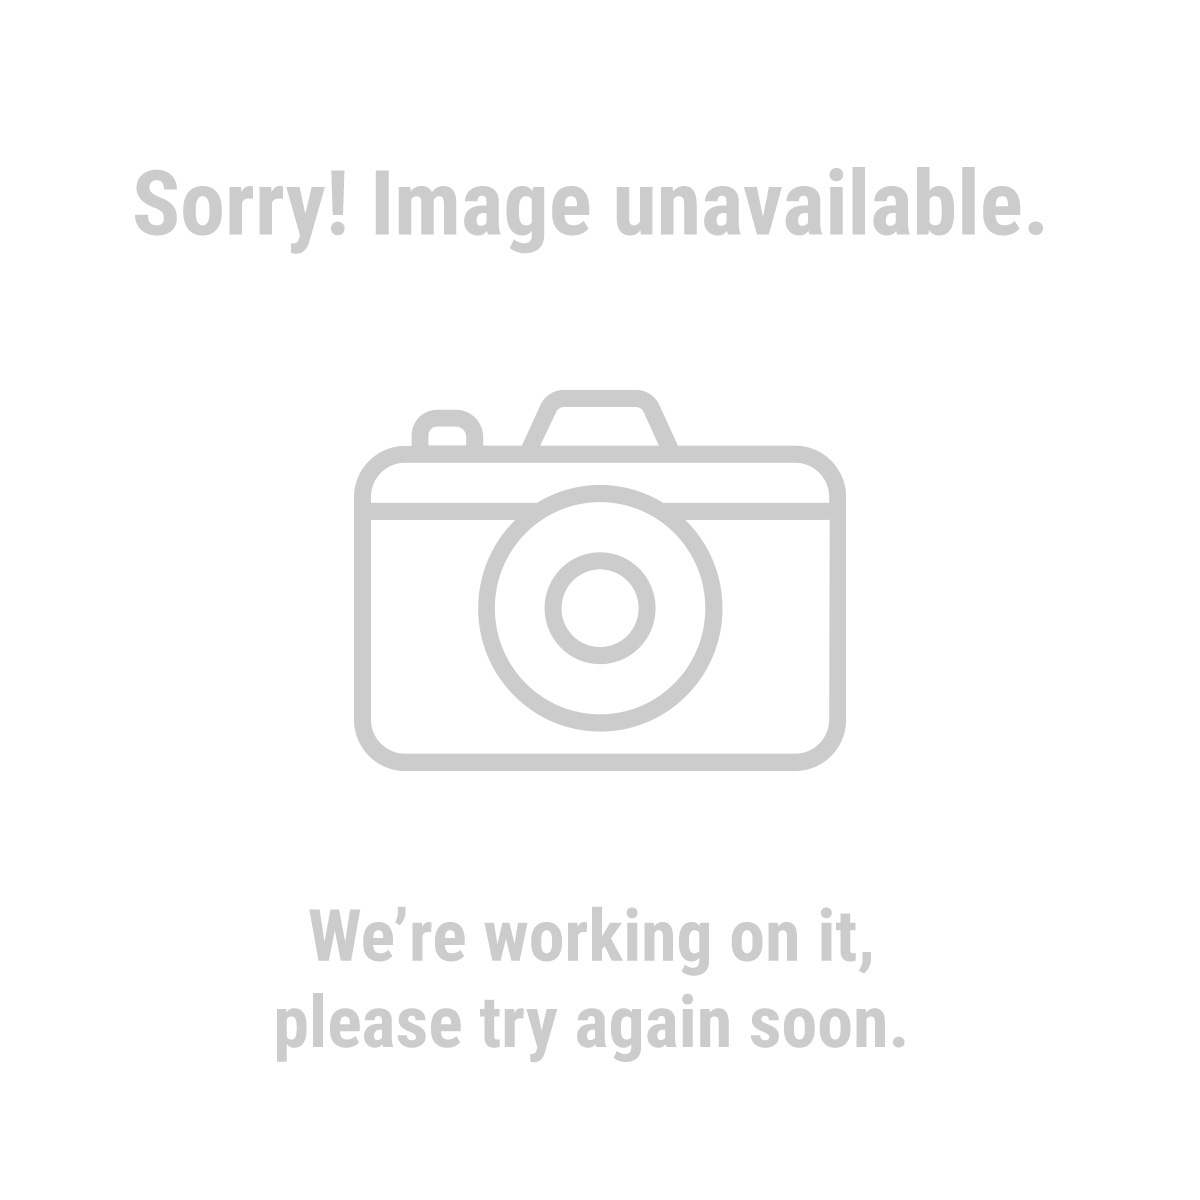 Storehouse 67671 150 Piece Set Screw Assortment